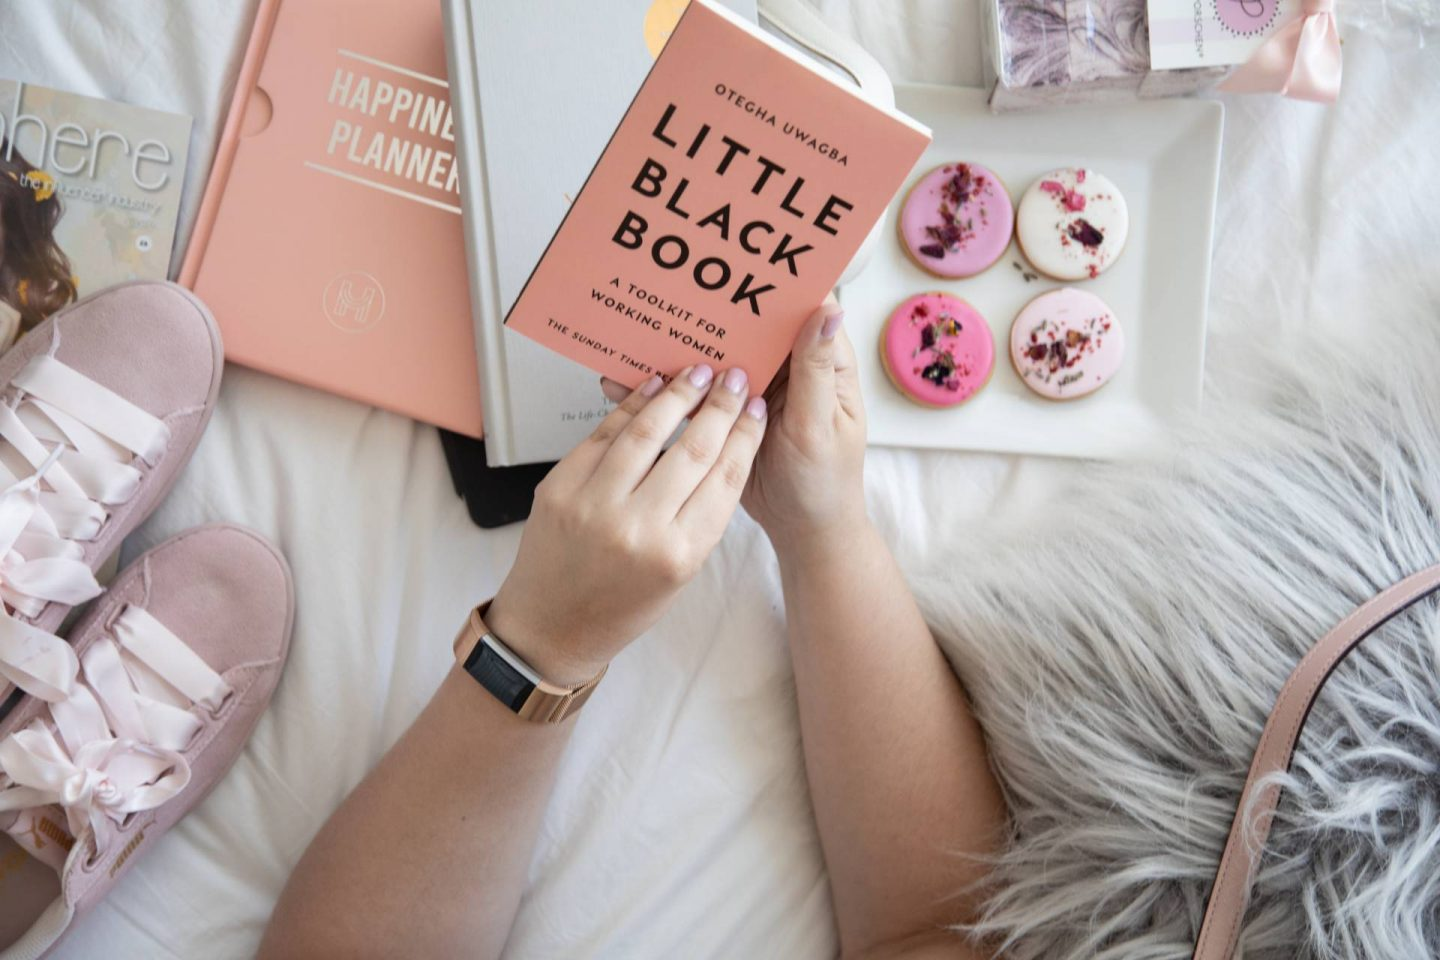 What the little black book: A toolkit for working women taught me